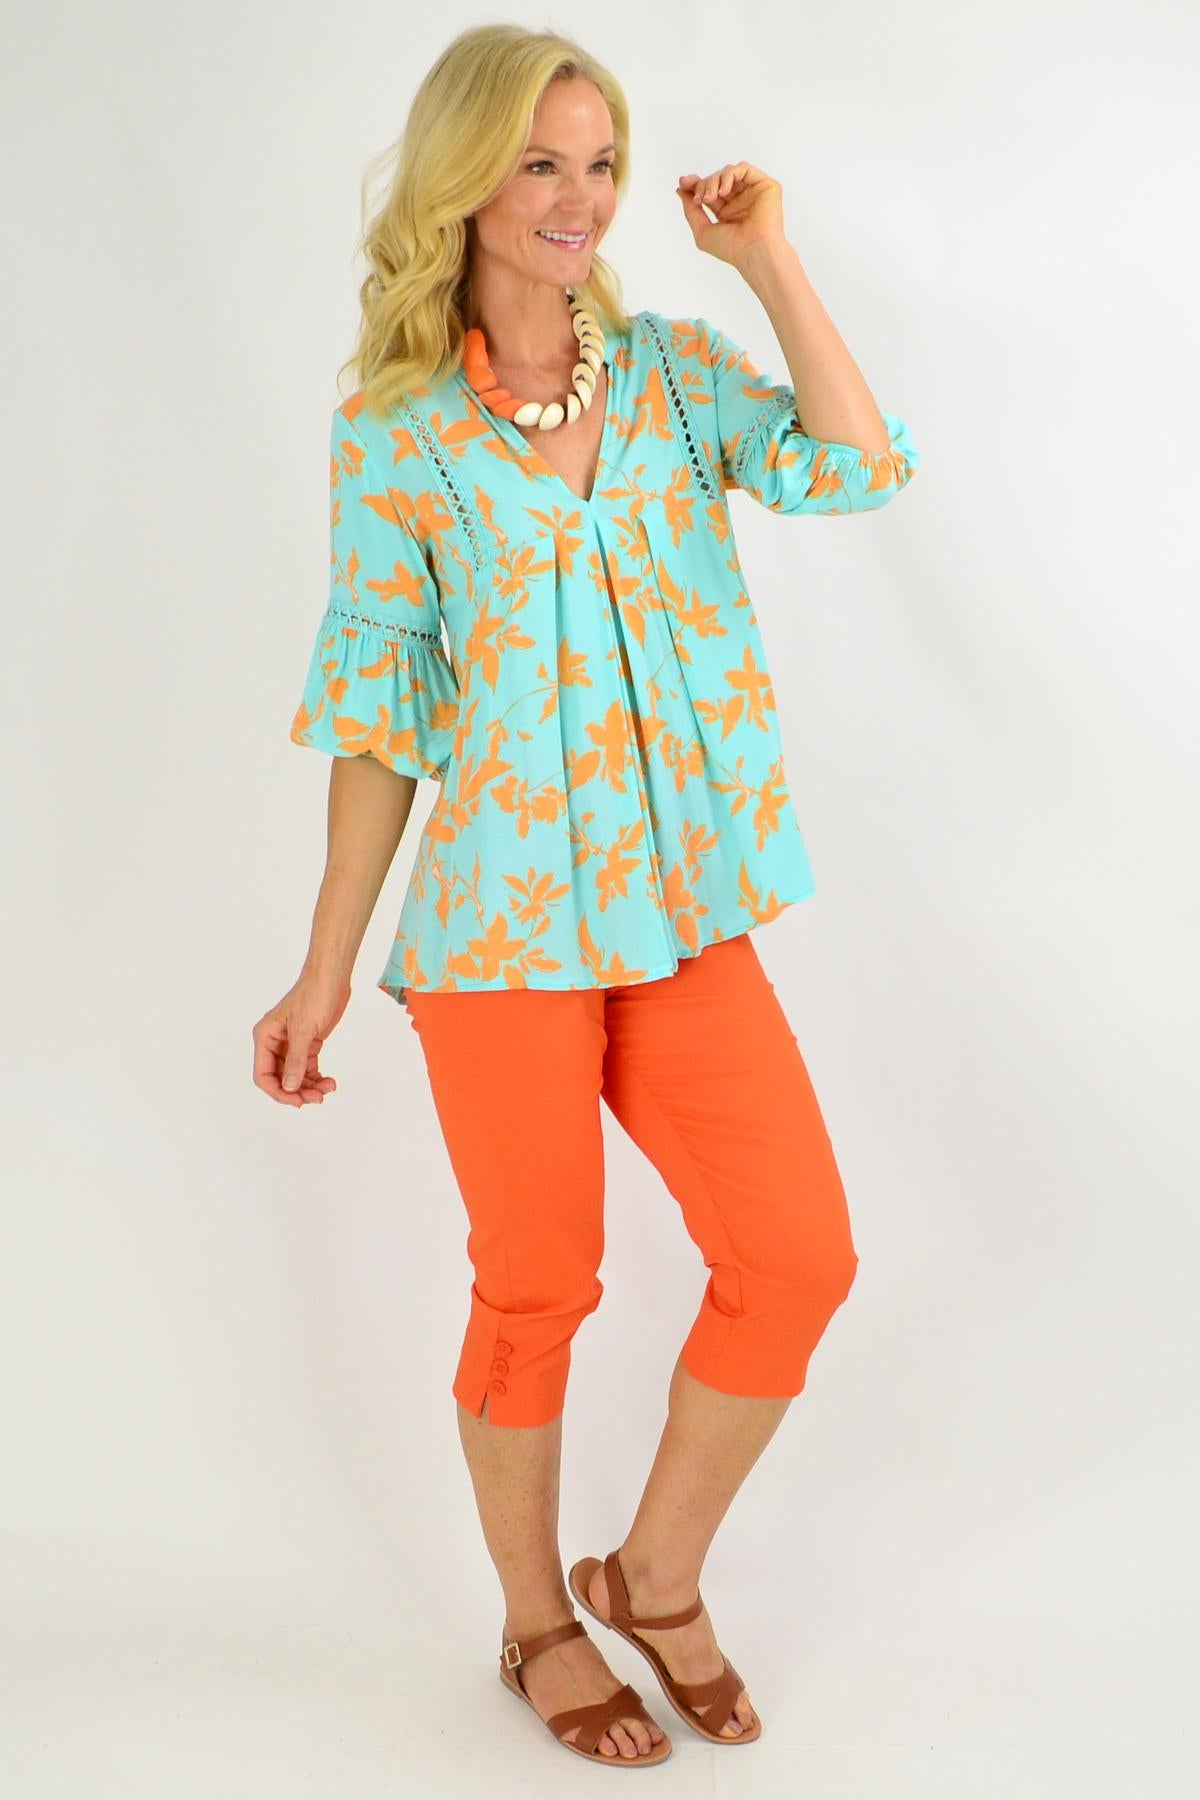 Turquoise Floral V Neck Swing Tunic Top | I Love Tunics | Tunic Tops | Tunic | Tunic Dresses  | womens clothing online